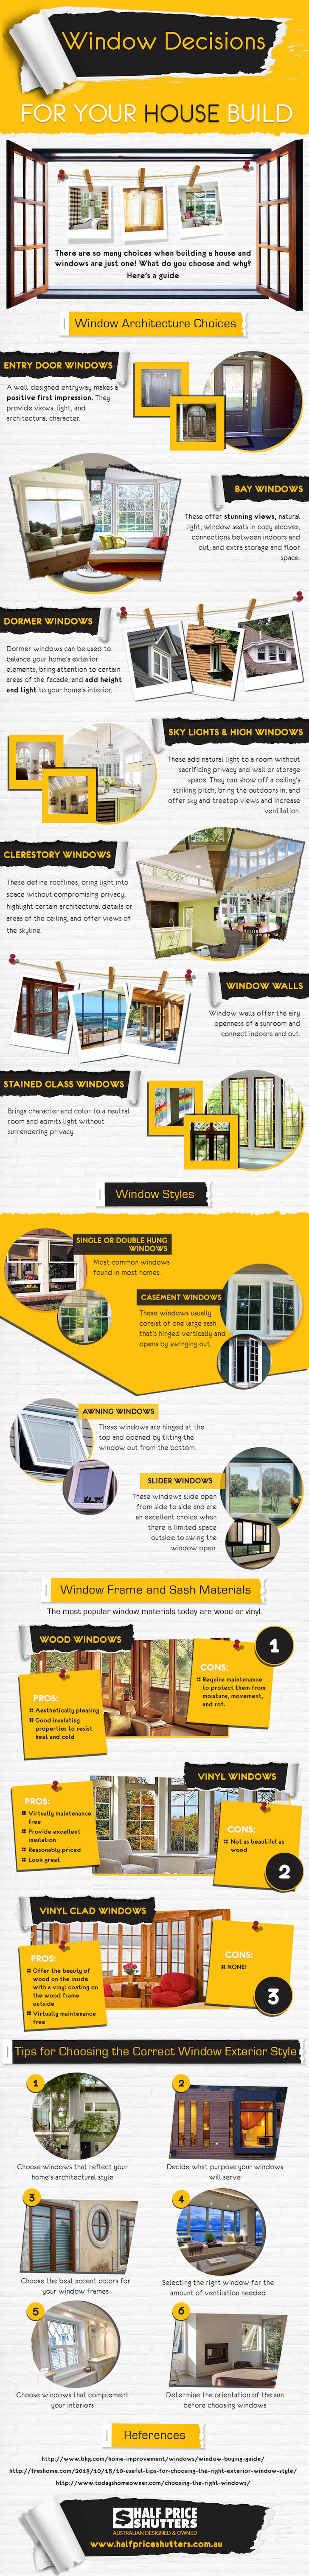 infographic, reader submitted content, half price shutters, windows, window architecture, natural light, sunlight, house building,